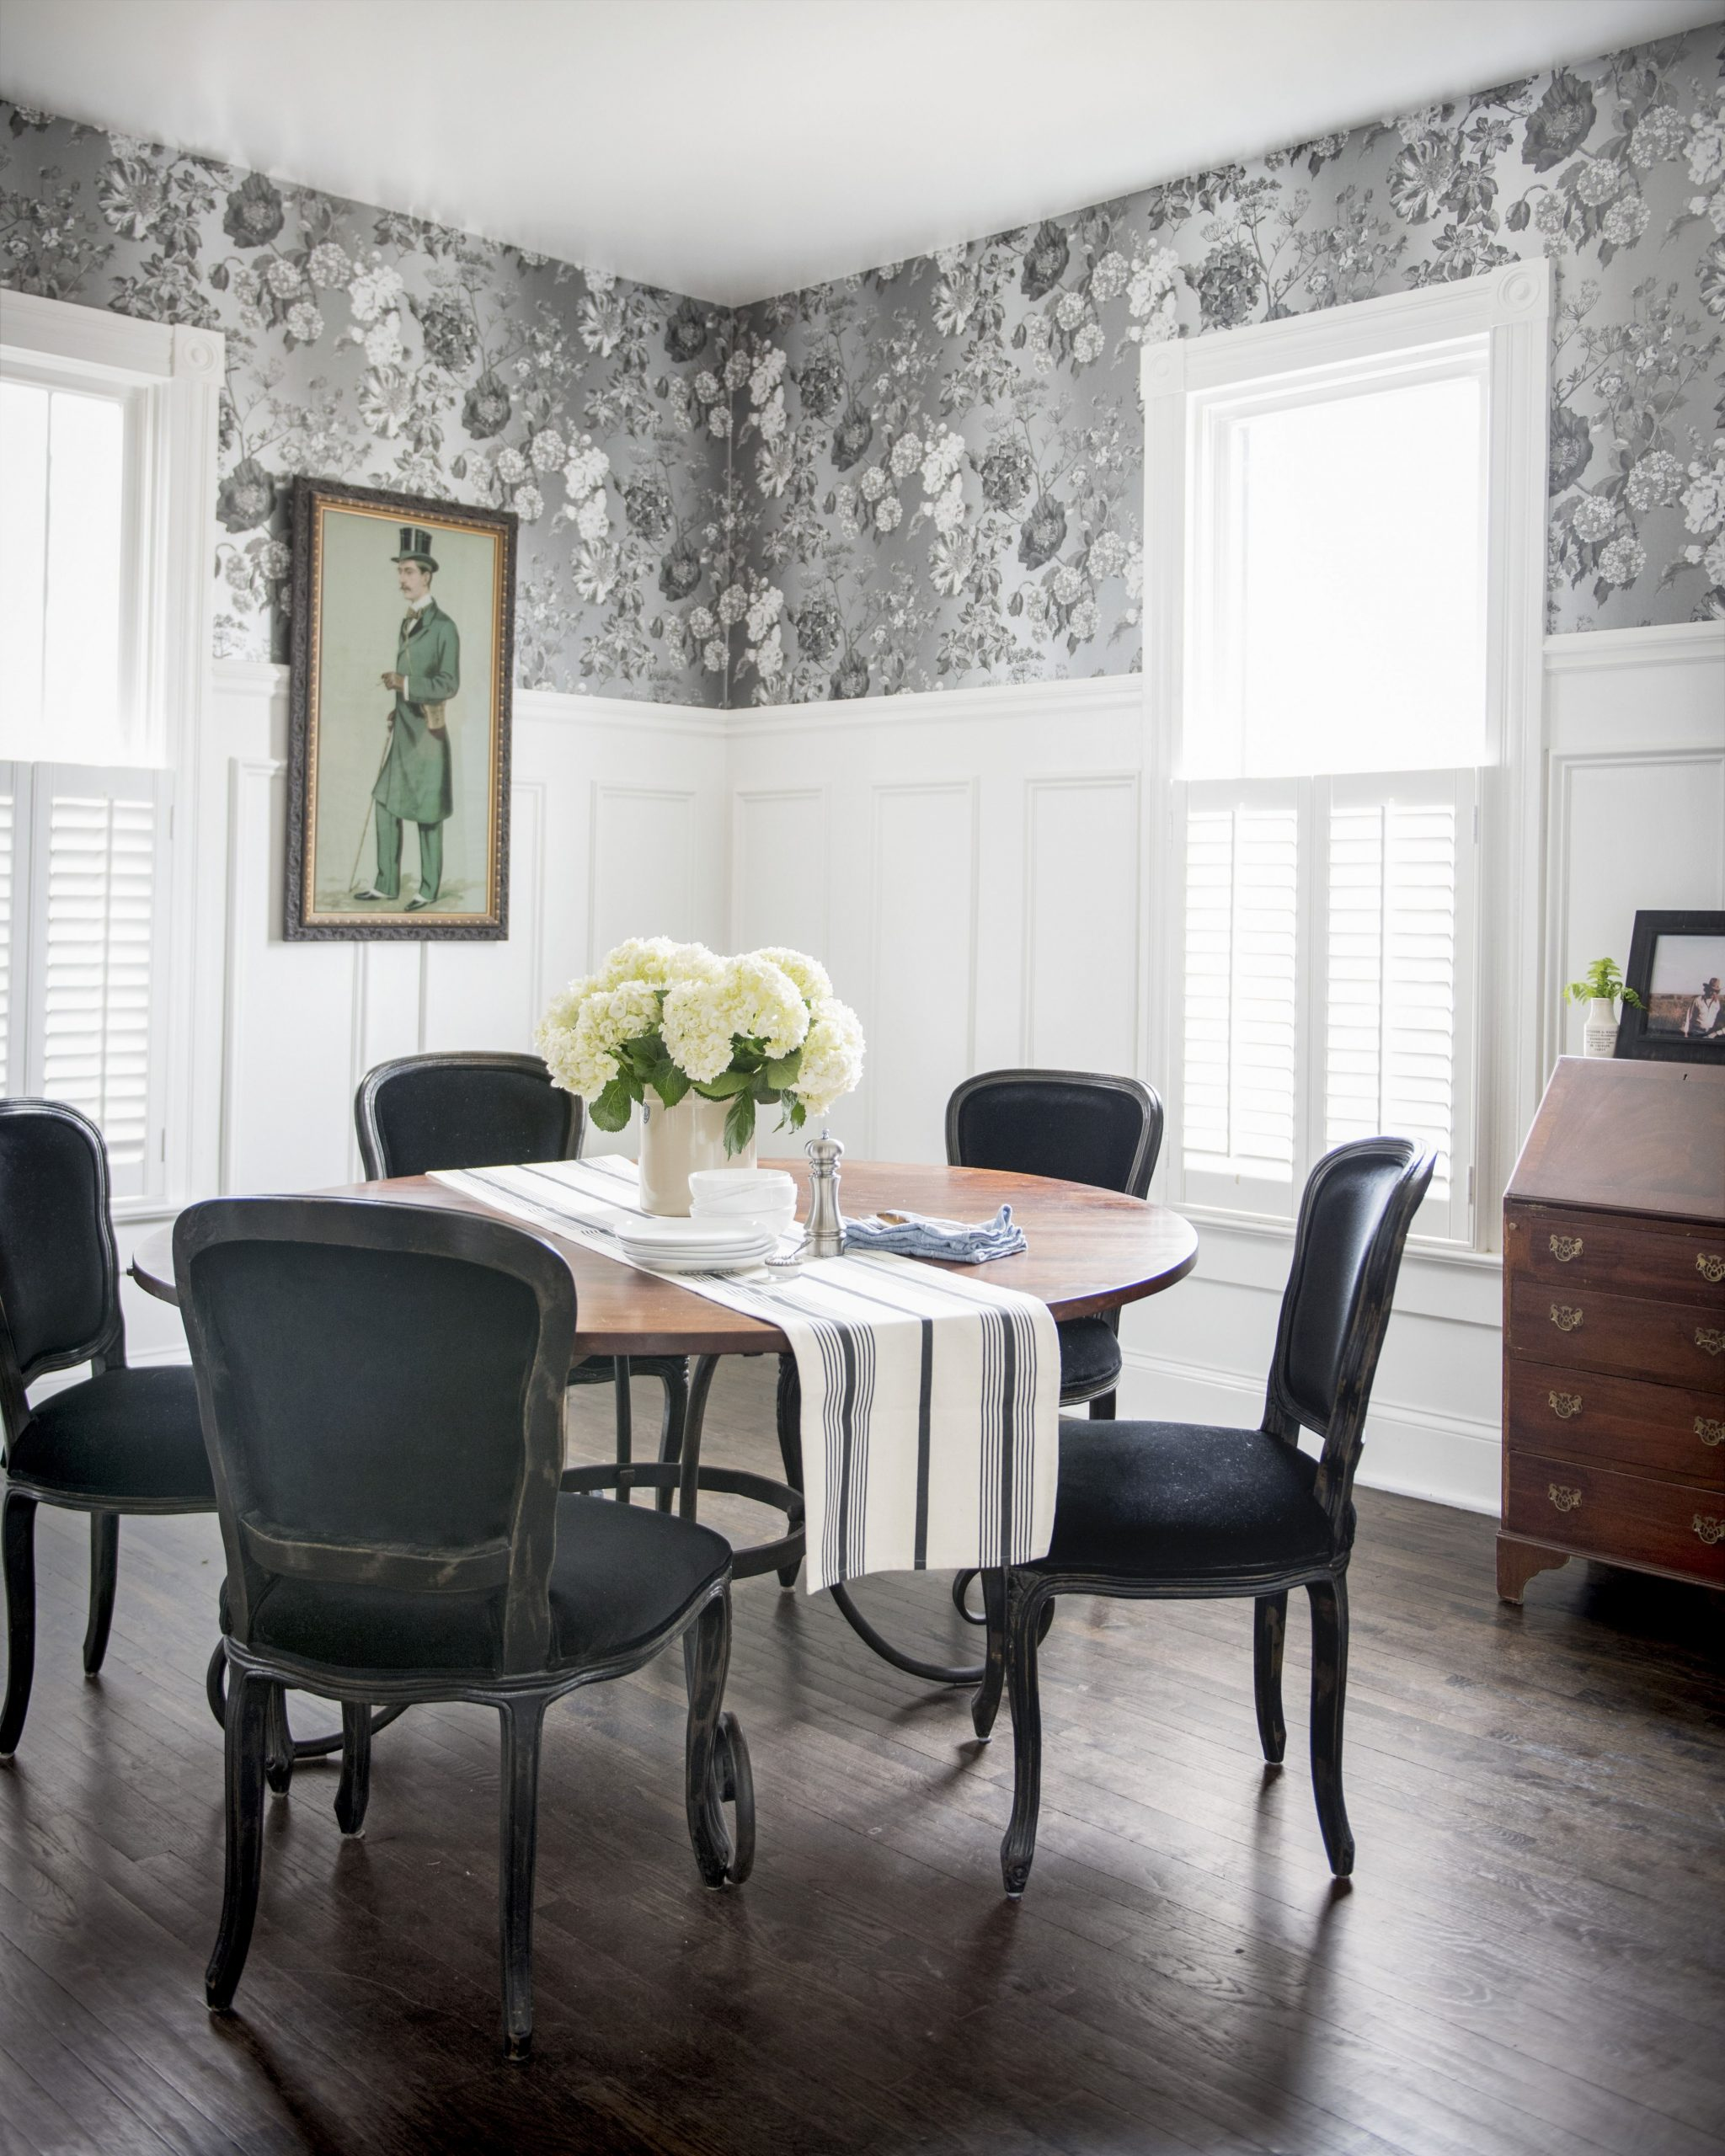 8 Best Dining Room Decorating Ideas - Pictures of Dining Room Decor - Dining Room Ideas Design